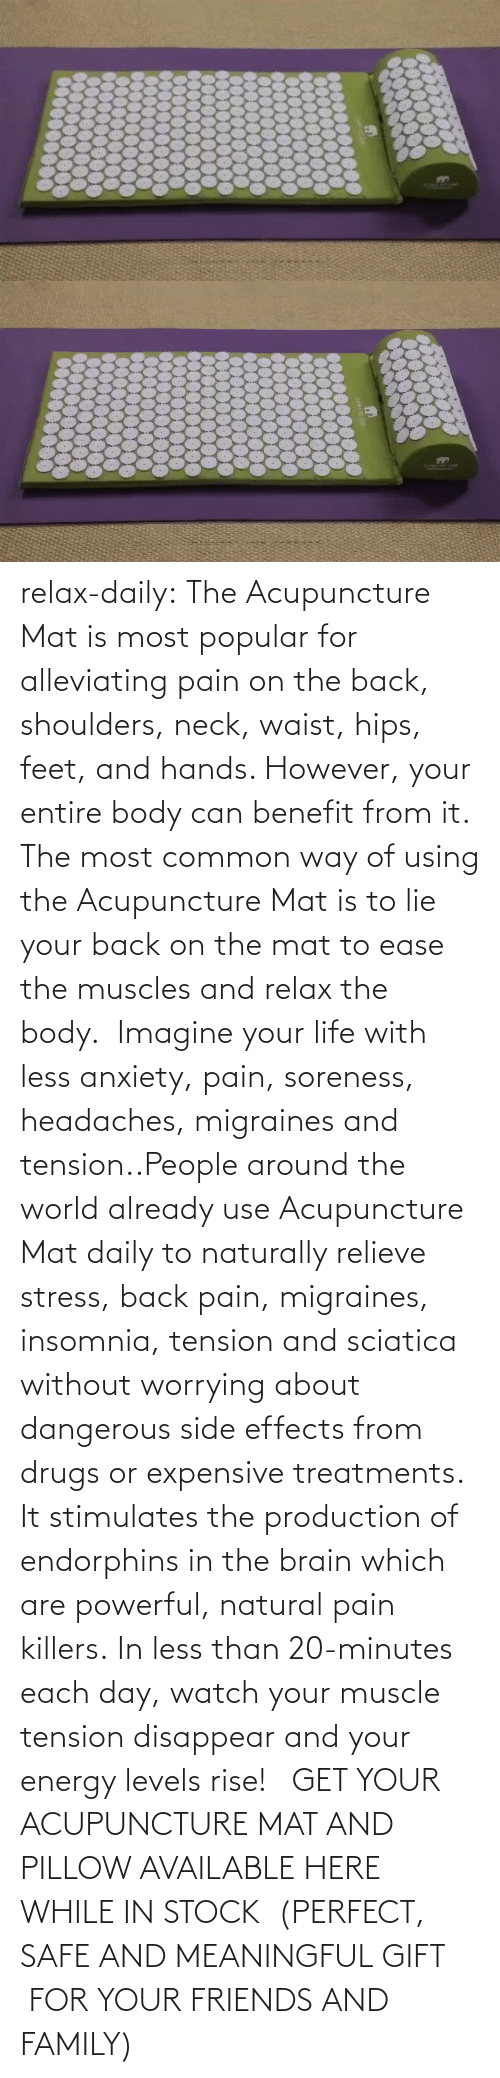 naturally: relax-daily:  The Acupuncture Mat is most popular for alleviating pain on the back, shoulders, neck, waist, hips, feet, and hands. However, your entire body can benefit from it. The most common way of using the Acupuncture Mat is to lie your back on the mat to ease the muscles and relax the body.  Imagine your life with less anxiety, pain, soreness, headaches, migraines and tension..People around the world already use Acupuncture Mat daily to naturally relieve stress, back pain, migraines, insomnia, tension and sciatica without worrying about dangerous side effects from drugs or expensive treatments. It stimulates the production of endorphins in the brain which are powerful, natural pain killers. In less than 20-minutes each day, watch your muscle tension disappear and your energy levels rise!   GET YOUR ACUPUNCTURE MAT AND PILLOW AVAILABLE HERE WHILE IN STOCK  (PERFECT, SAFE AND MEANINGFUL GIFT  FOR YOUR FRIENDS AND FAMILY)